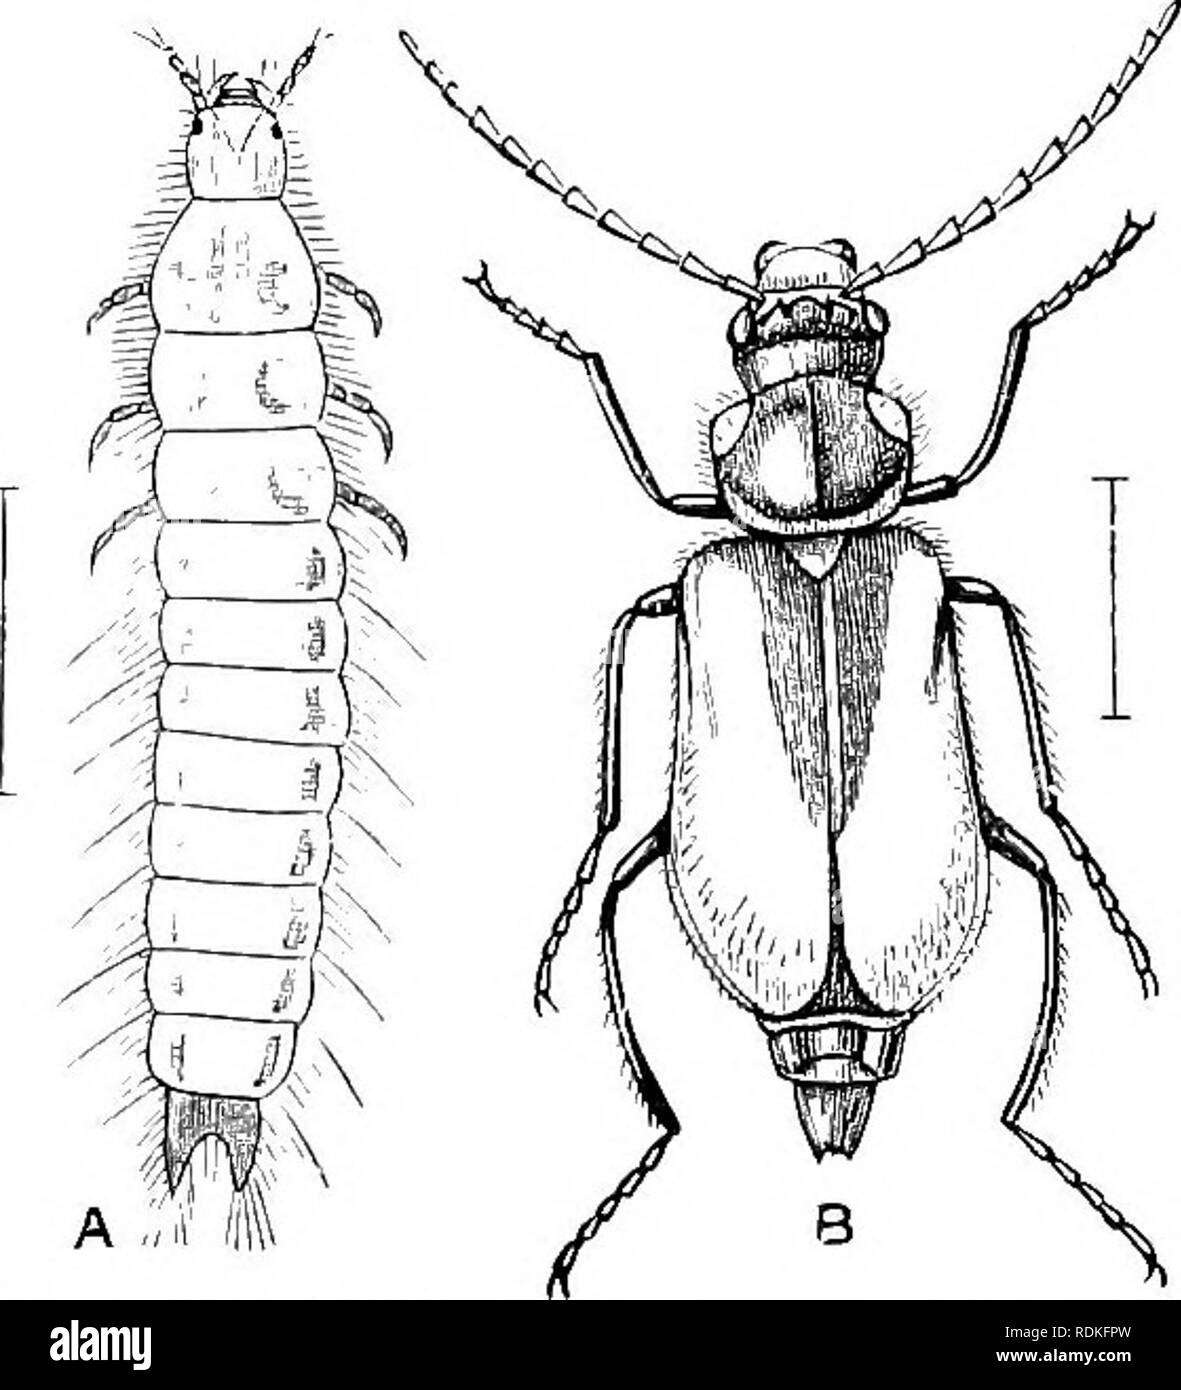 . The Cambridge natural history. Zoology. :S: COLEOPTERA CHAP. the under side of the head, and a moderate-sized pair with fine facets on the upper side. Nothing is known as to the habits of this curiosity, not even whether it is luminous in one or both sexes. It is believed that the perfect instar of Lampyrides takes no food at all. The larvae -were formerly supposed to be vegetarian, but it appears probable that nearly all are carnivorous, the chief food being Mollusea either living or dead. The larvae are active, and in many species look almost as much like perfect Insects as do the imagos.  - Stock Image